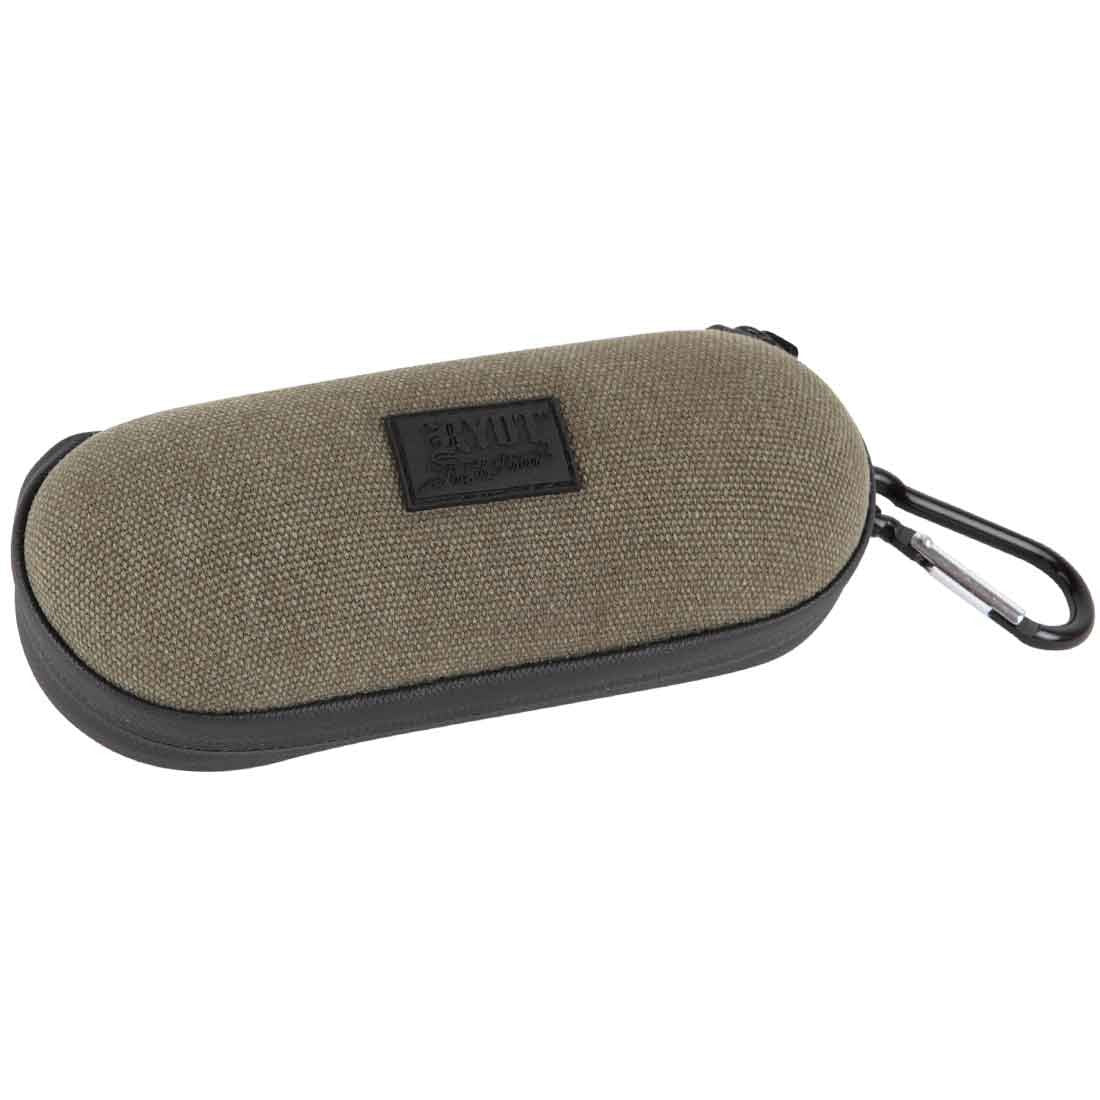 RYOT Smell Safe Hard Case - Large